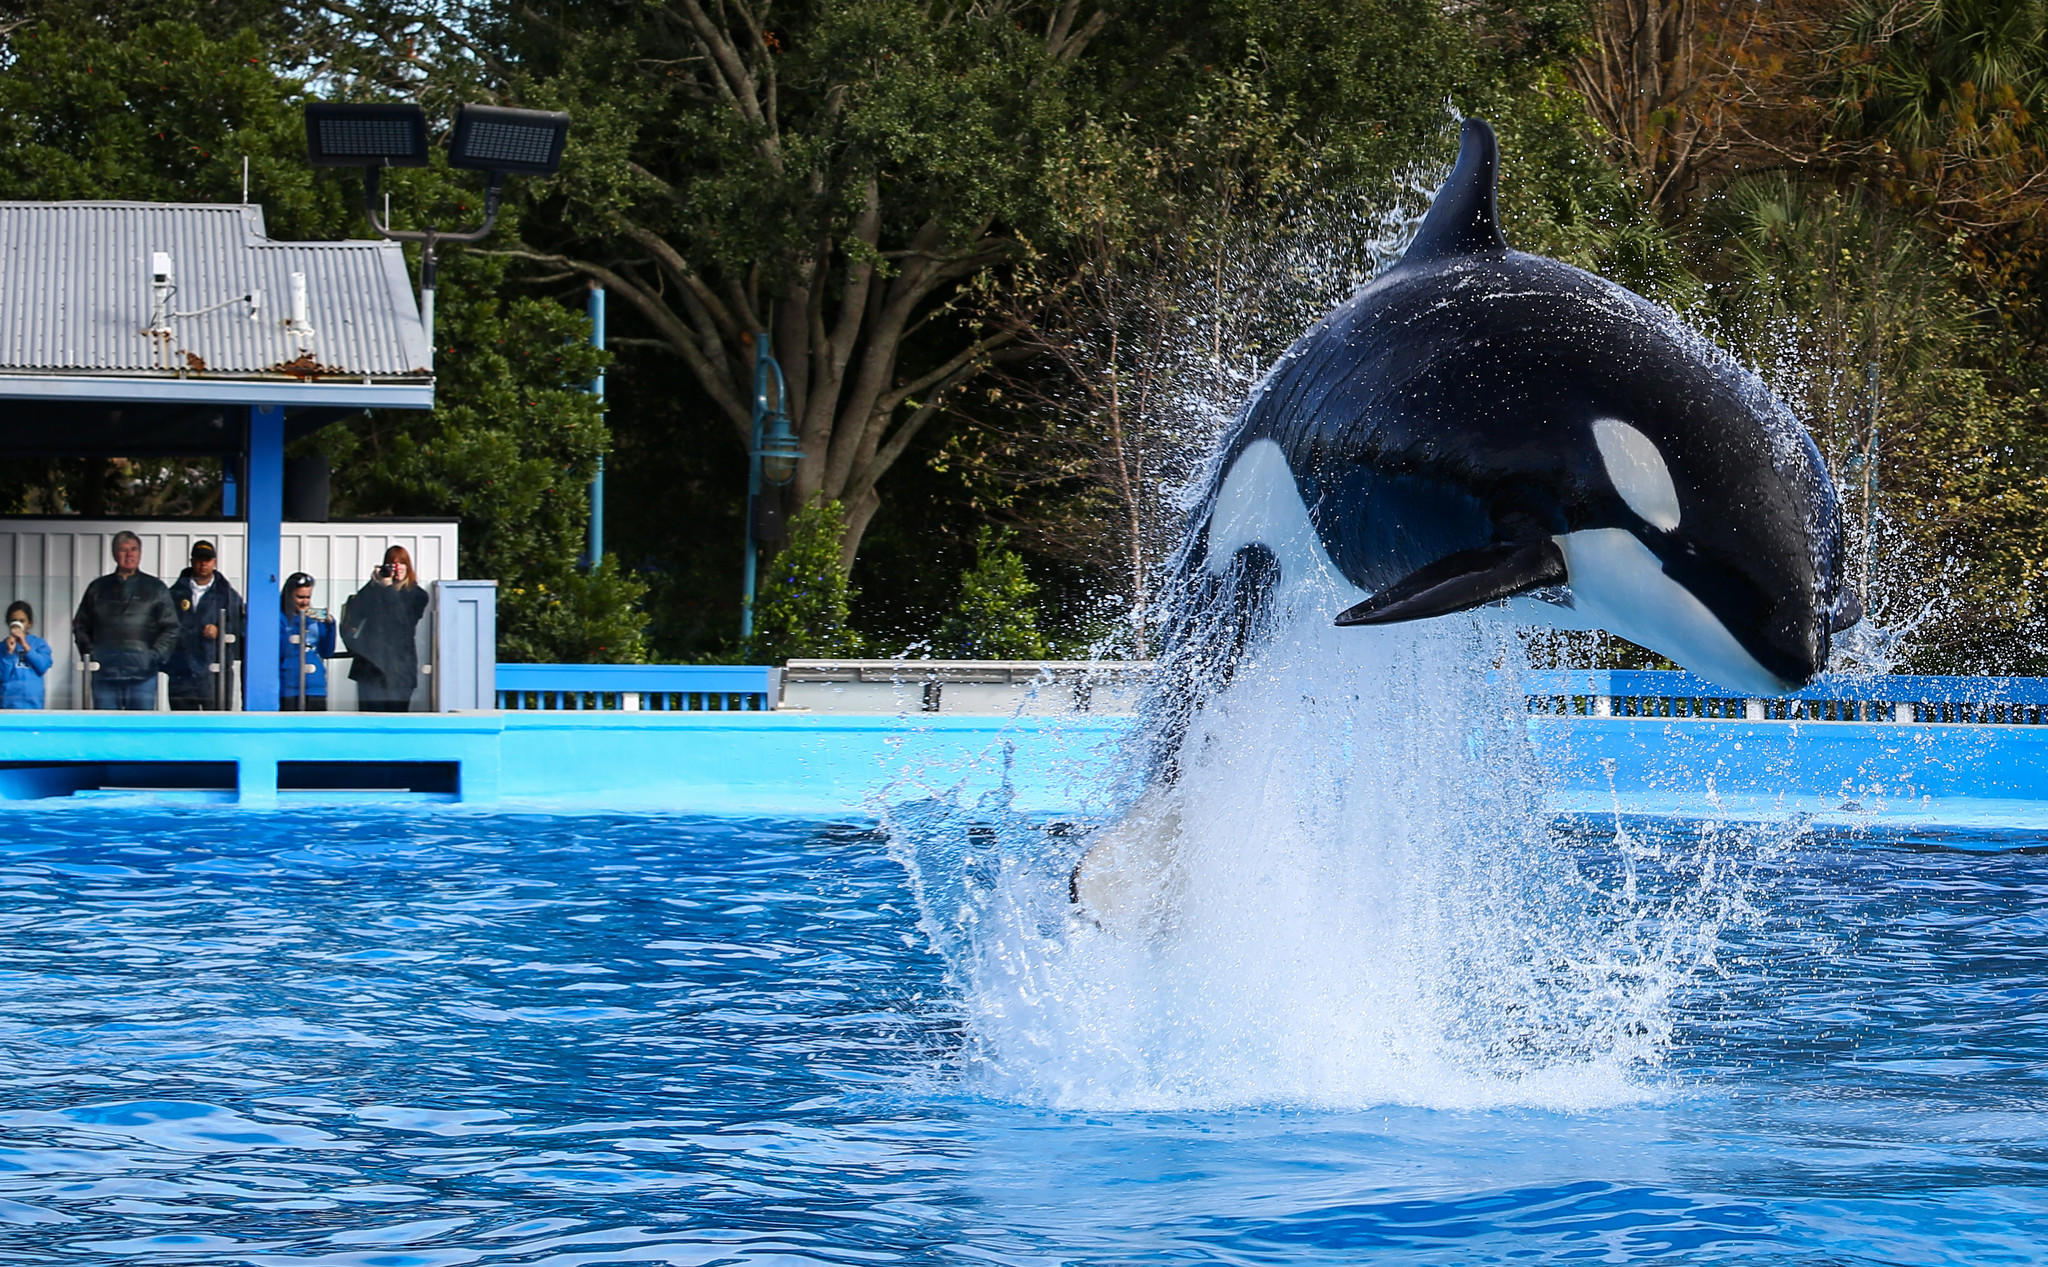 Trainers work with Orcas during a show at the Shamu up close attraction at SeaWorld in Orlando, on January 07, 2014.